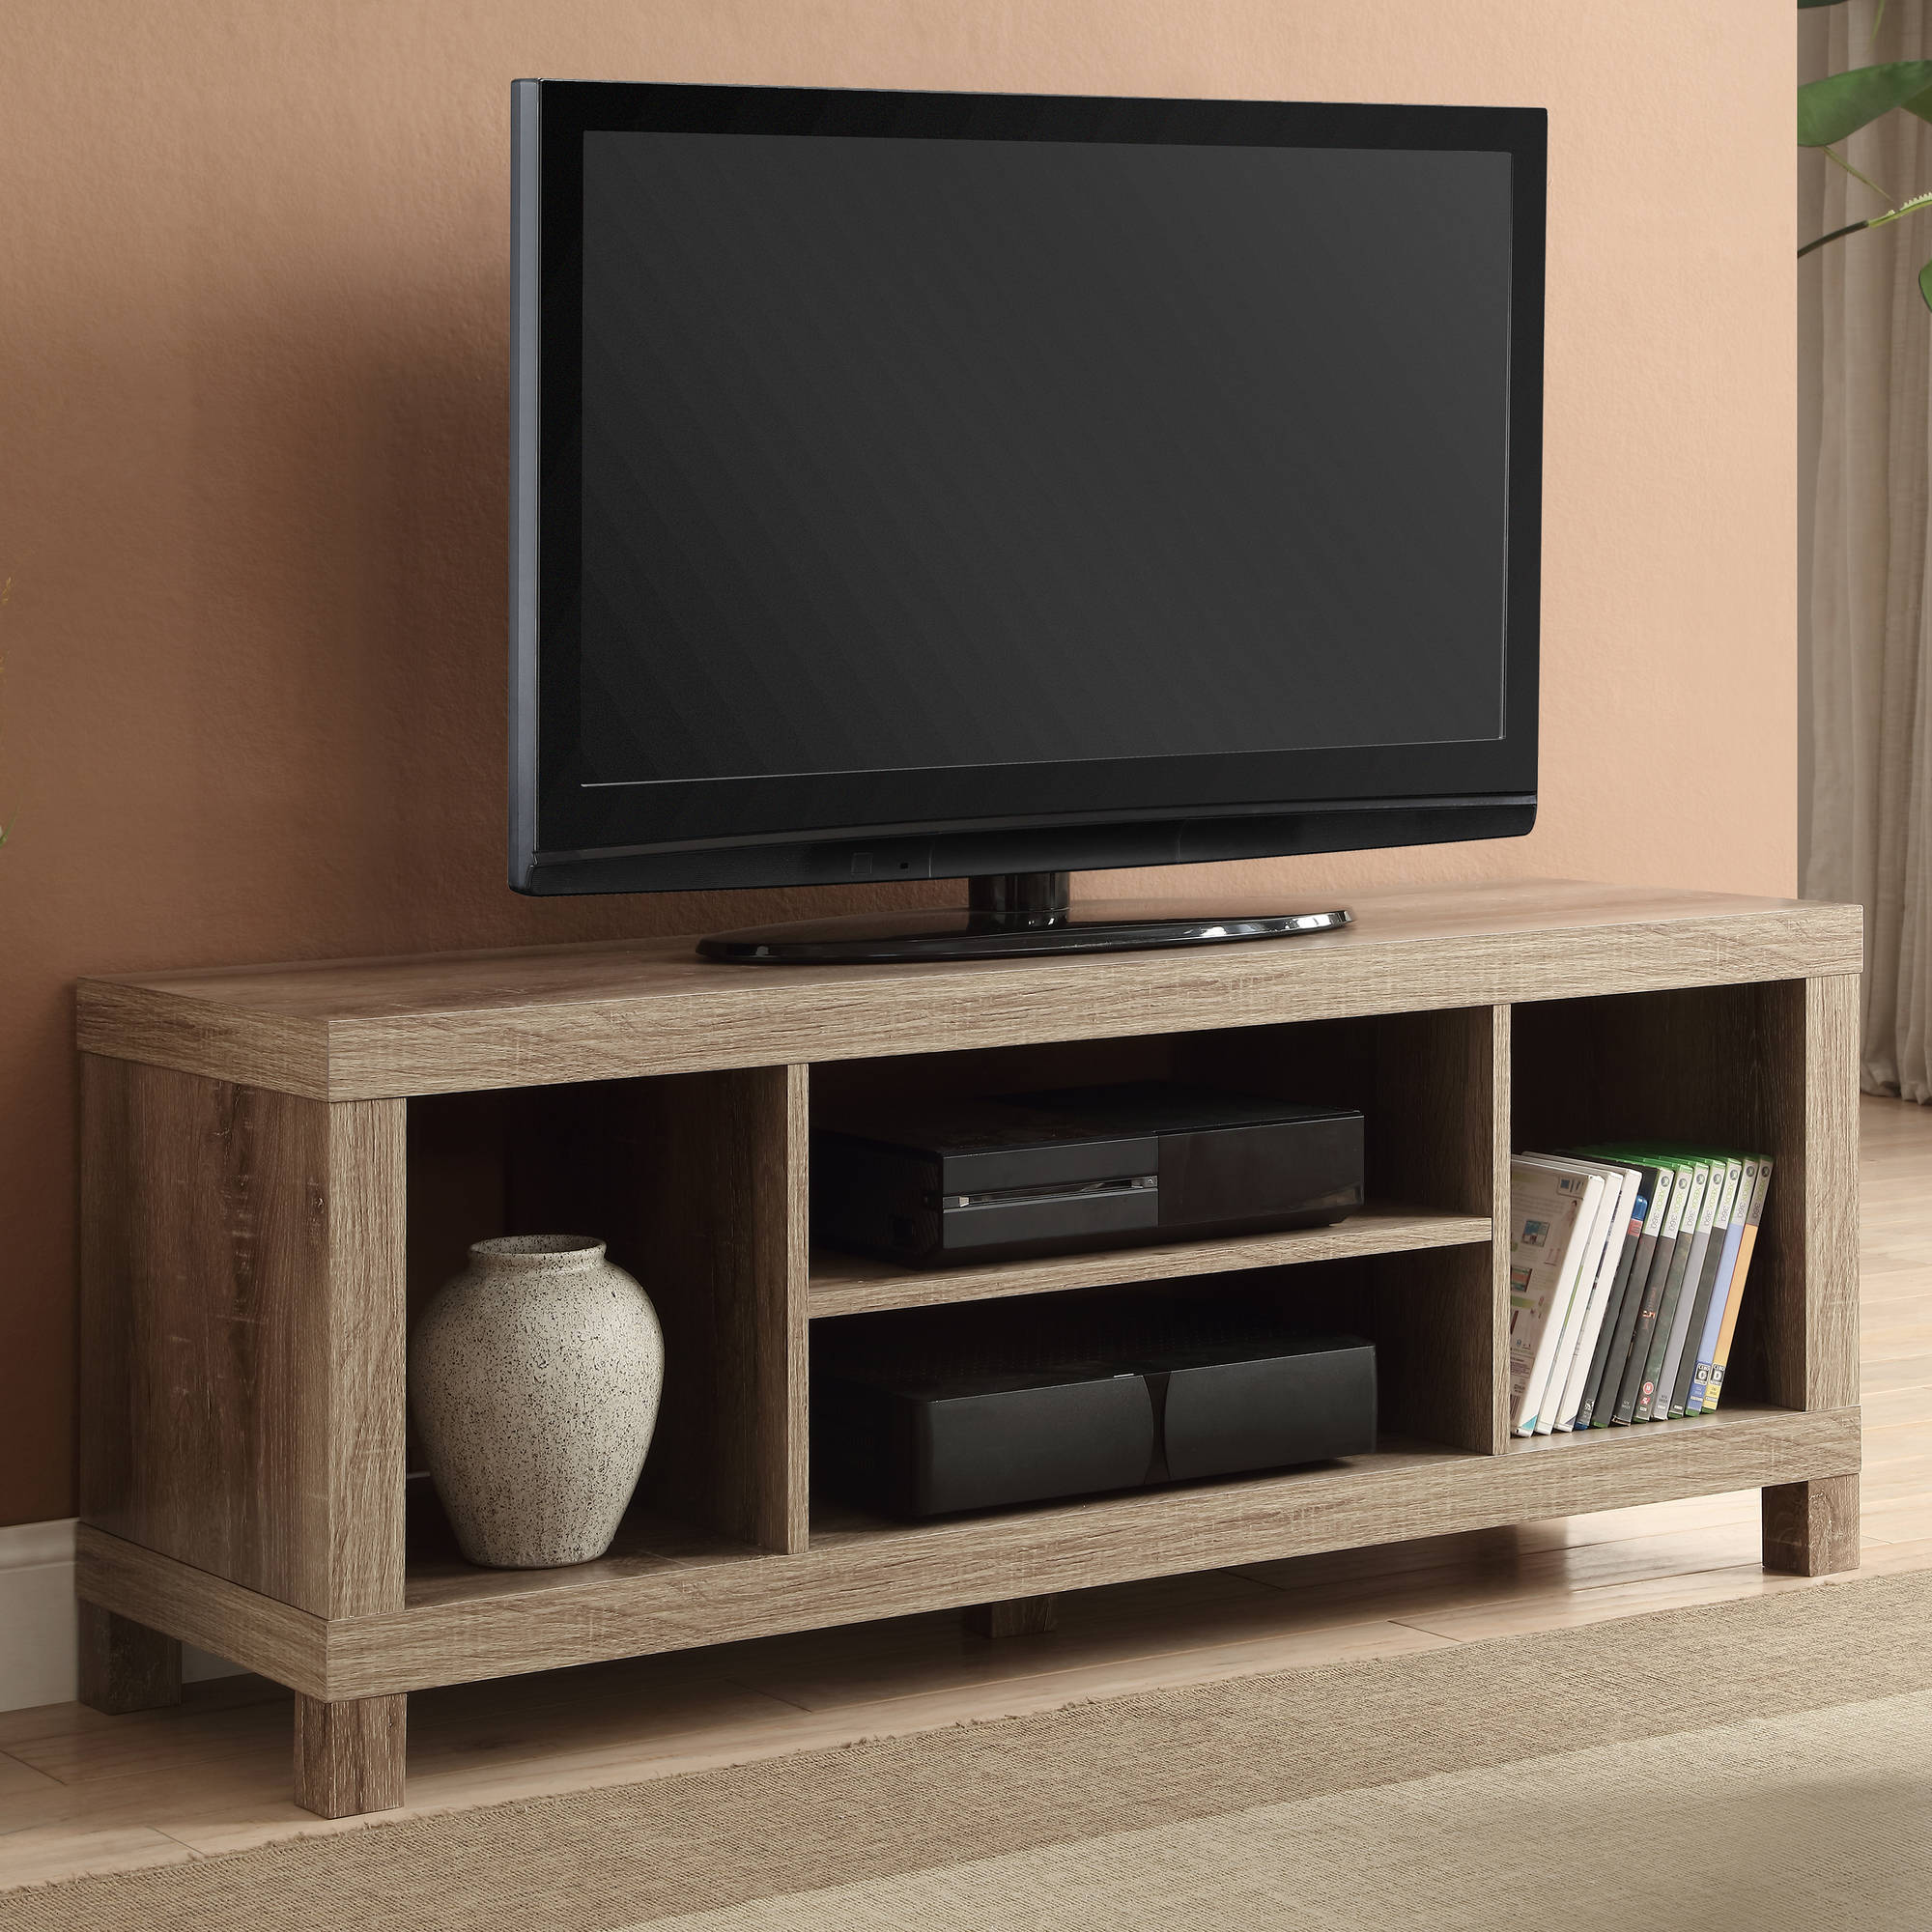 Tv Stand Table For Flat Screens Living Room Furniture With ...